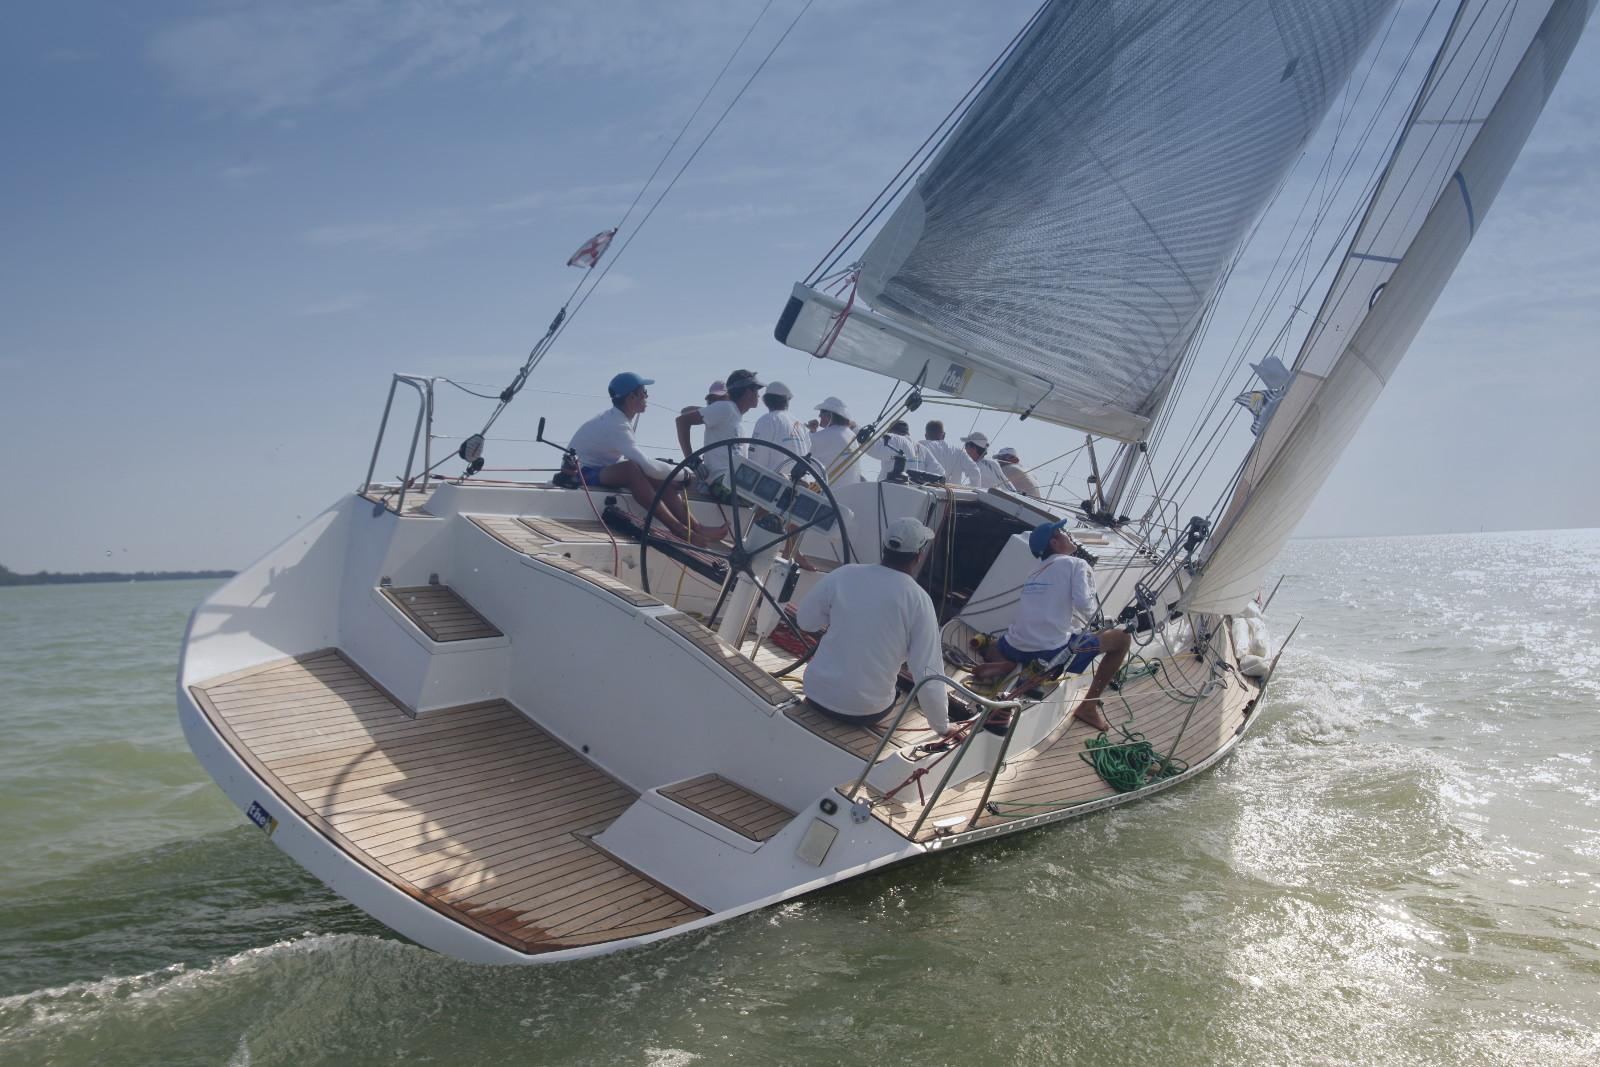 Kékszalag – Europe's Biggest Sailing Competition At Lake Balaton